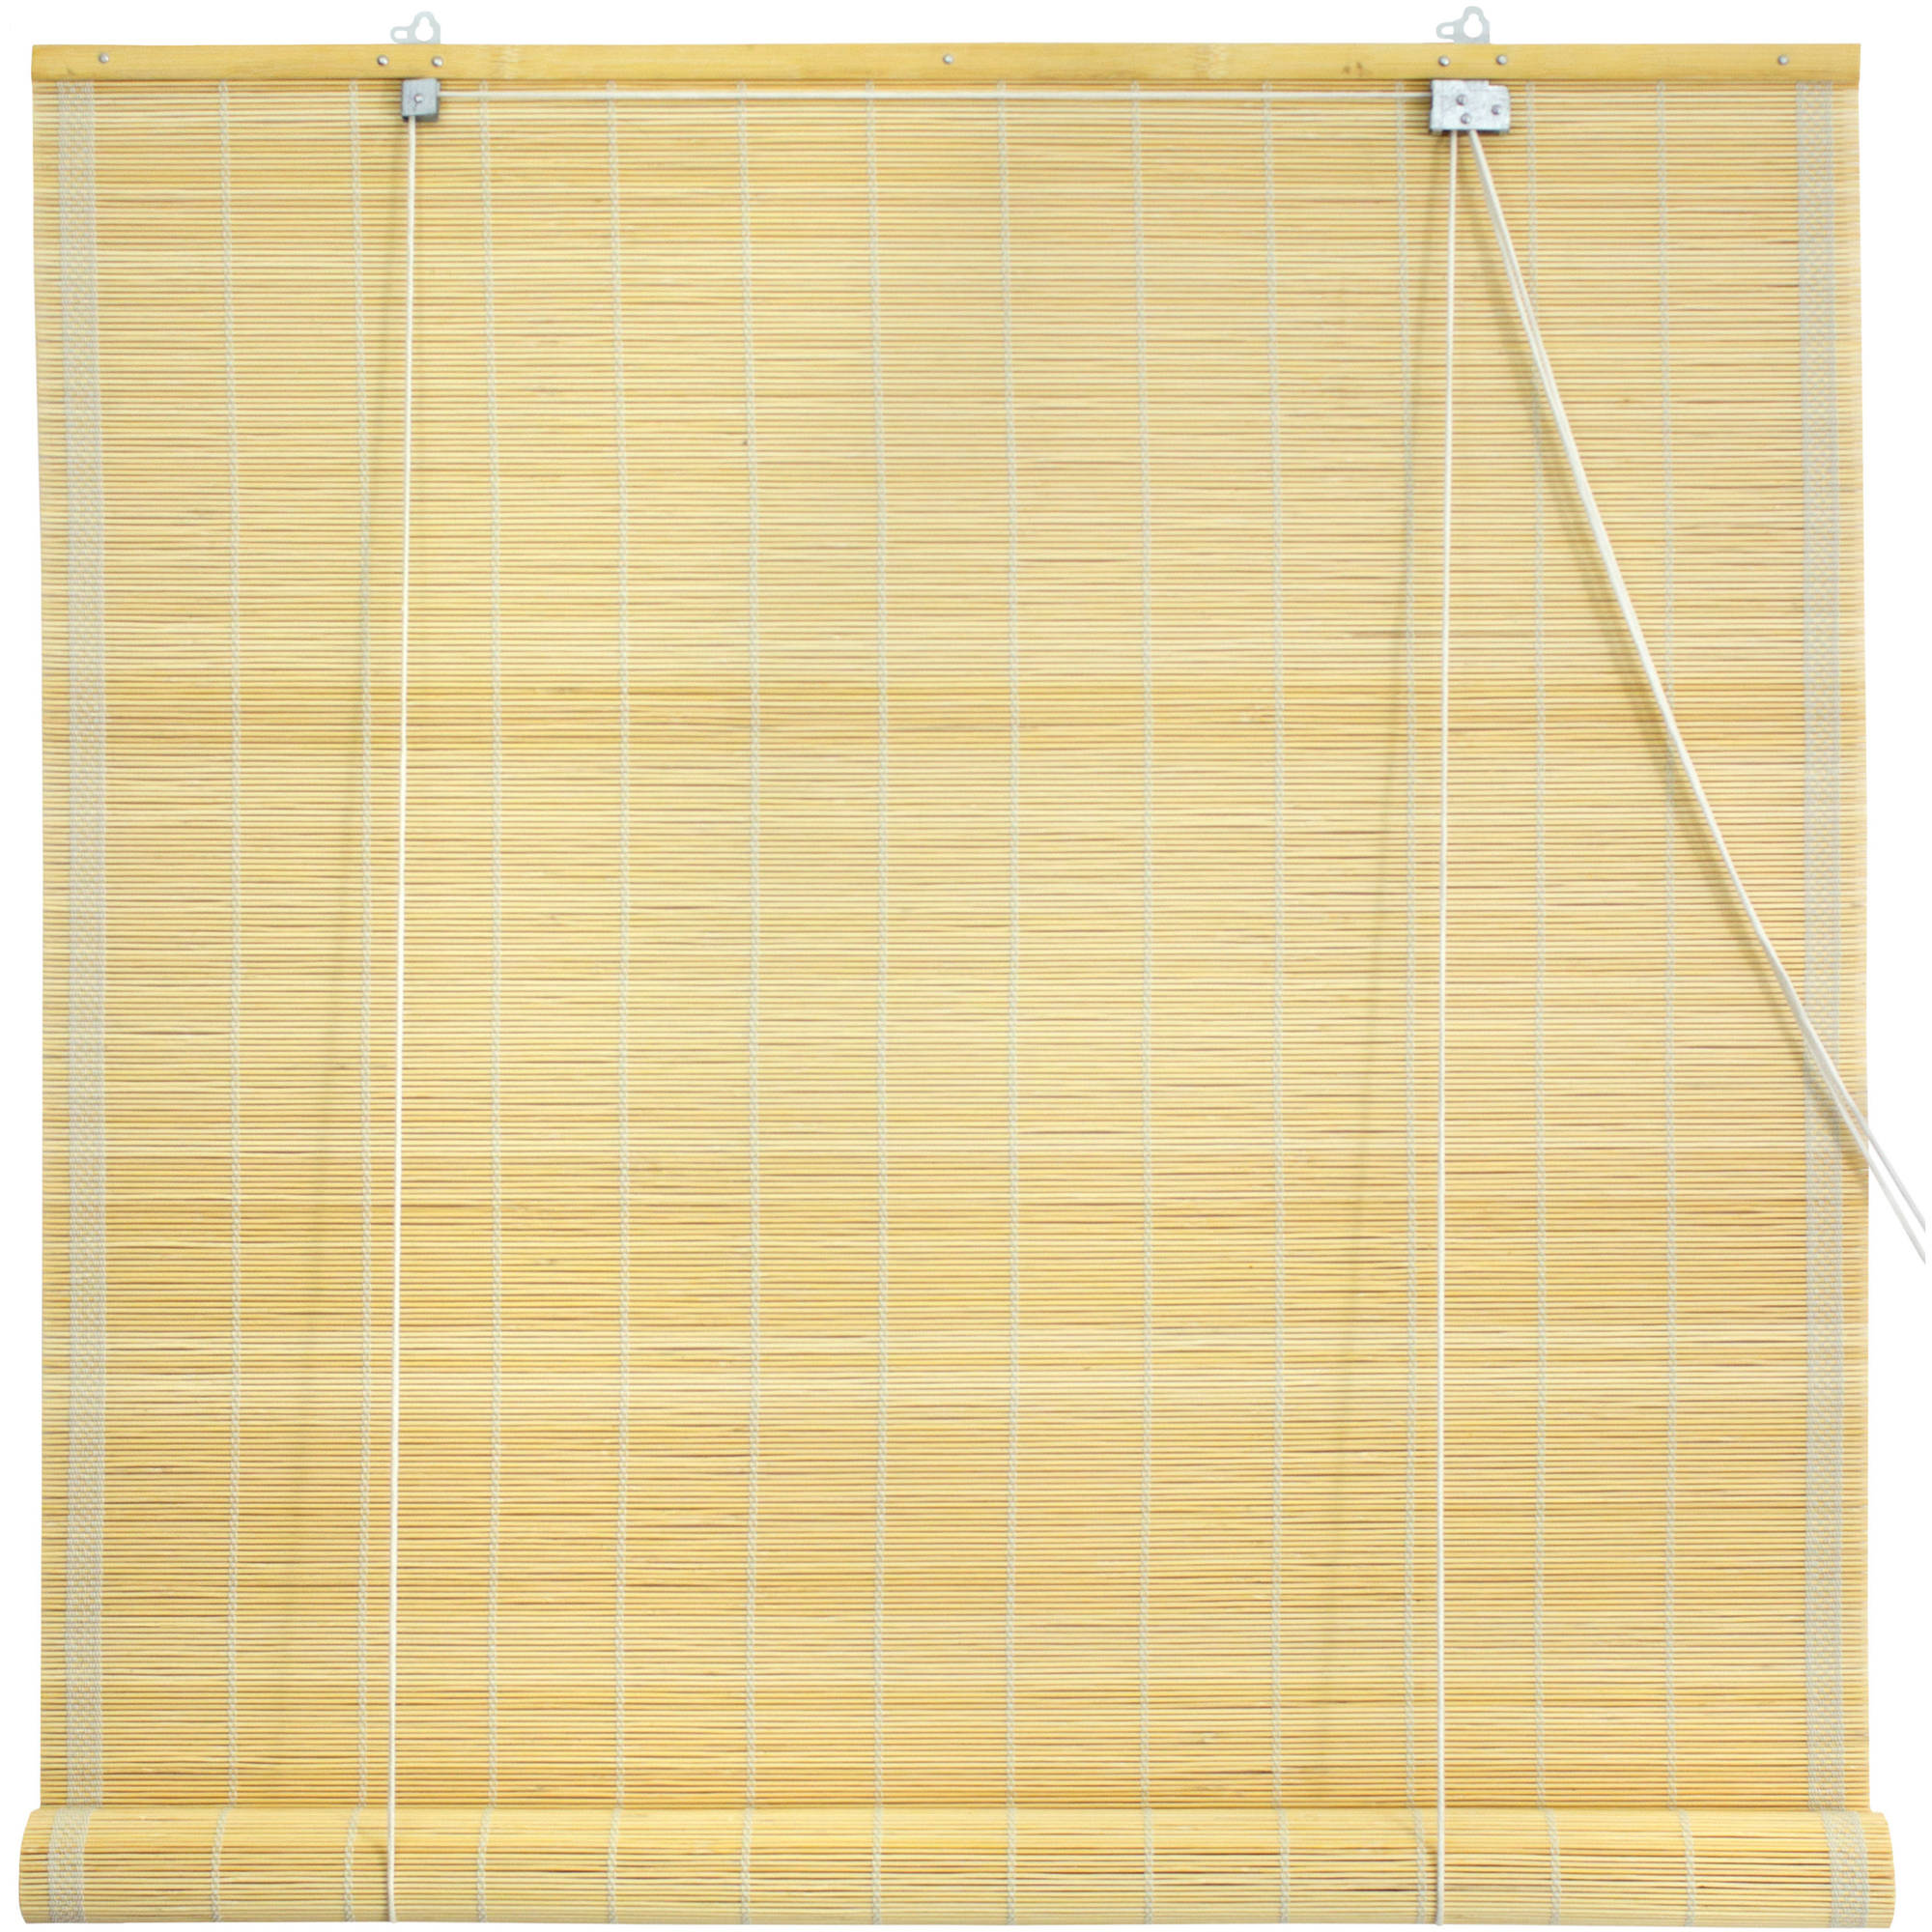 hart products roll studio spo up blinds stores bamboo s white look